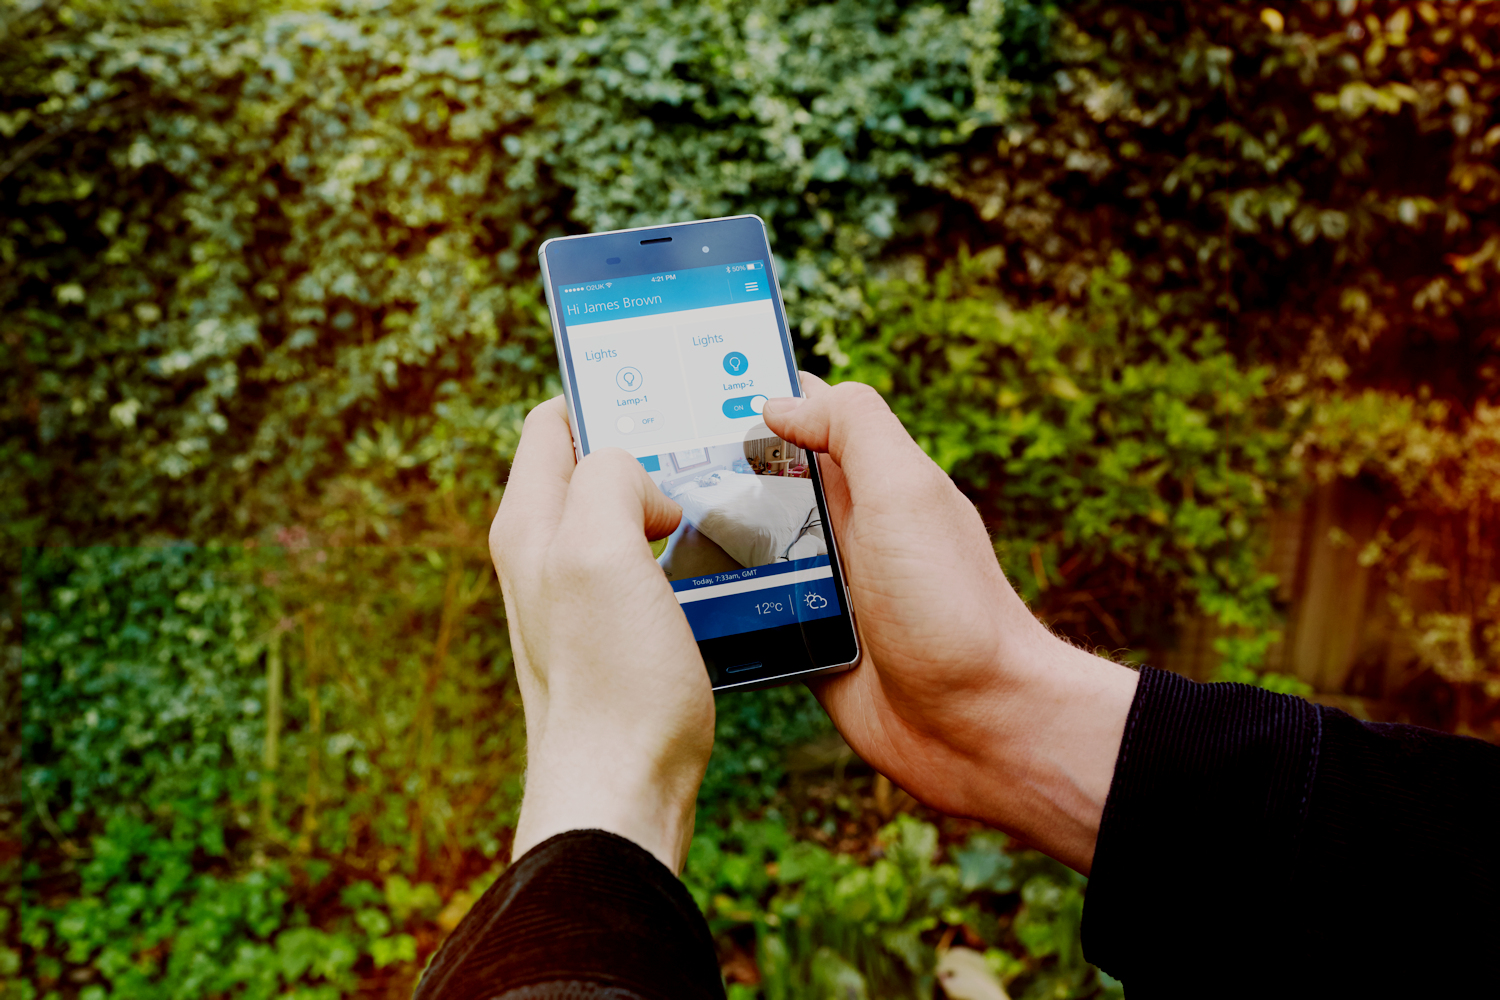 O2 Launches Smart Home Service